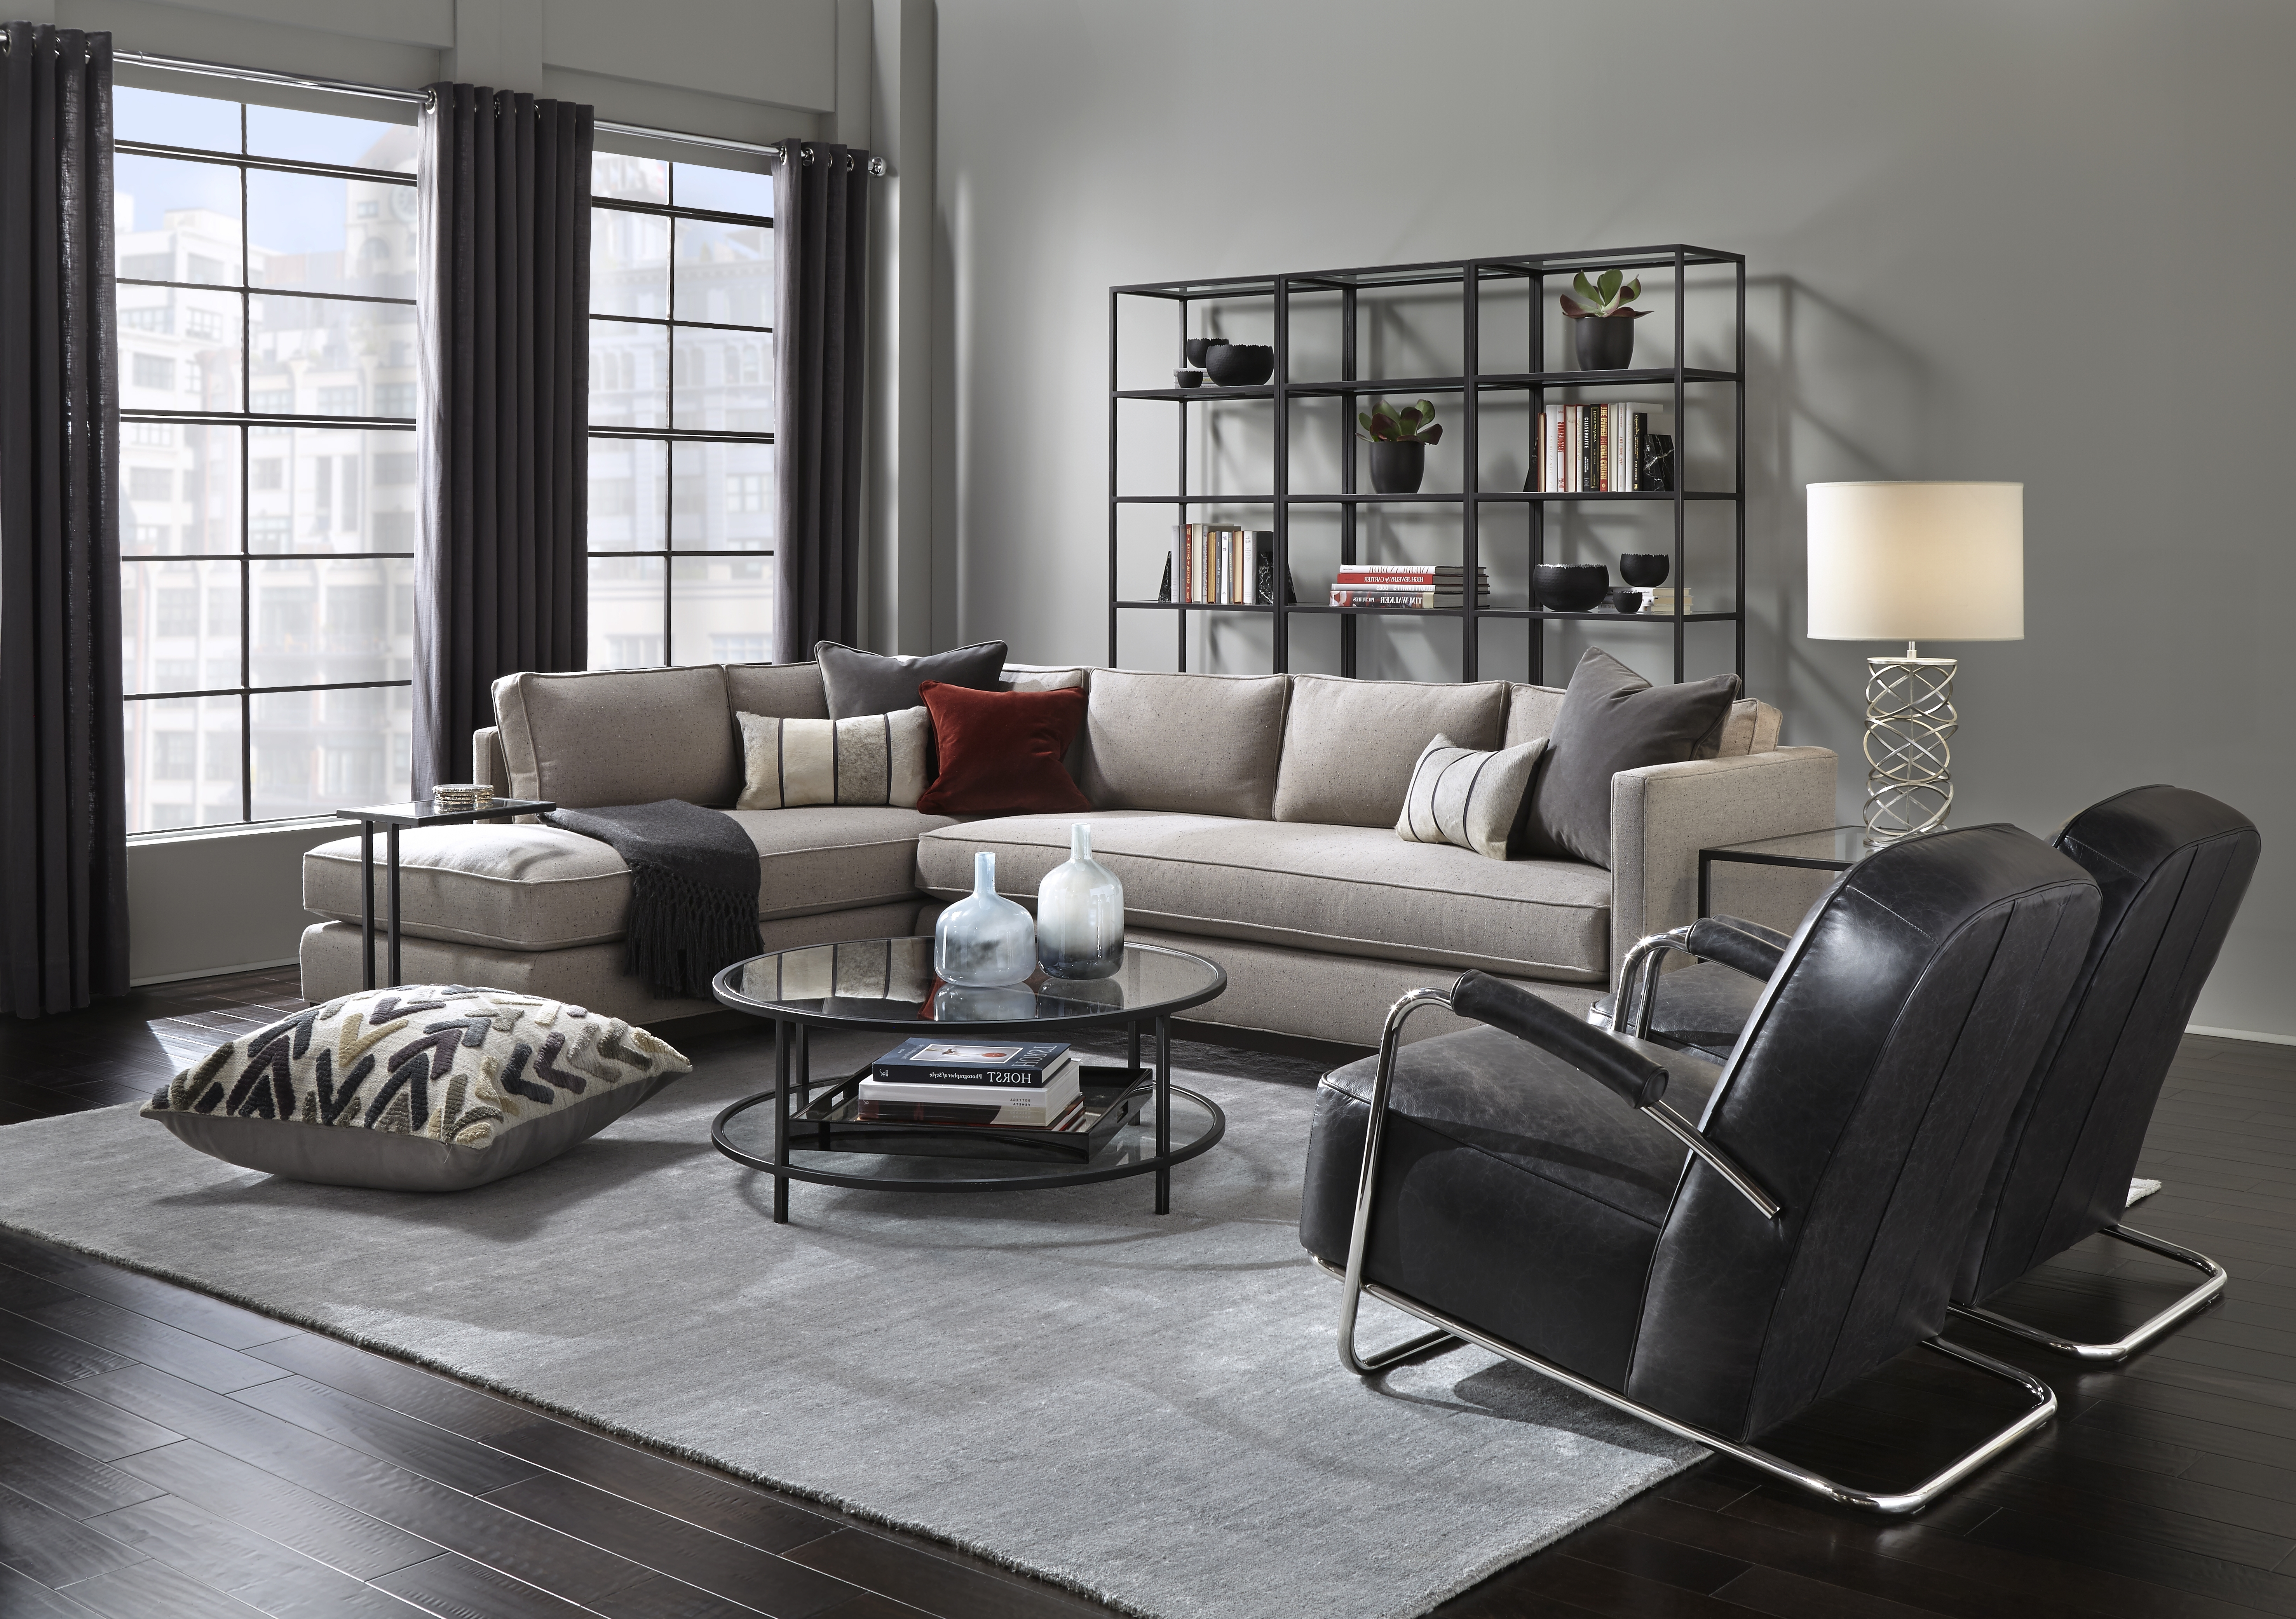 Trendy Restoration Hardware Sectional Sofas Within 12 Designer Picked Sofas For Every Budget, And People With Pets (View 8 of 15)